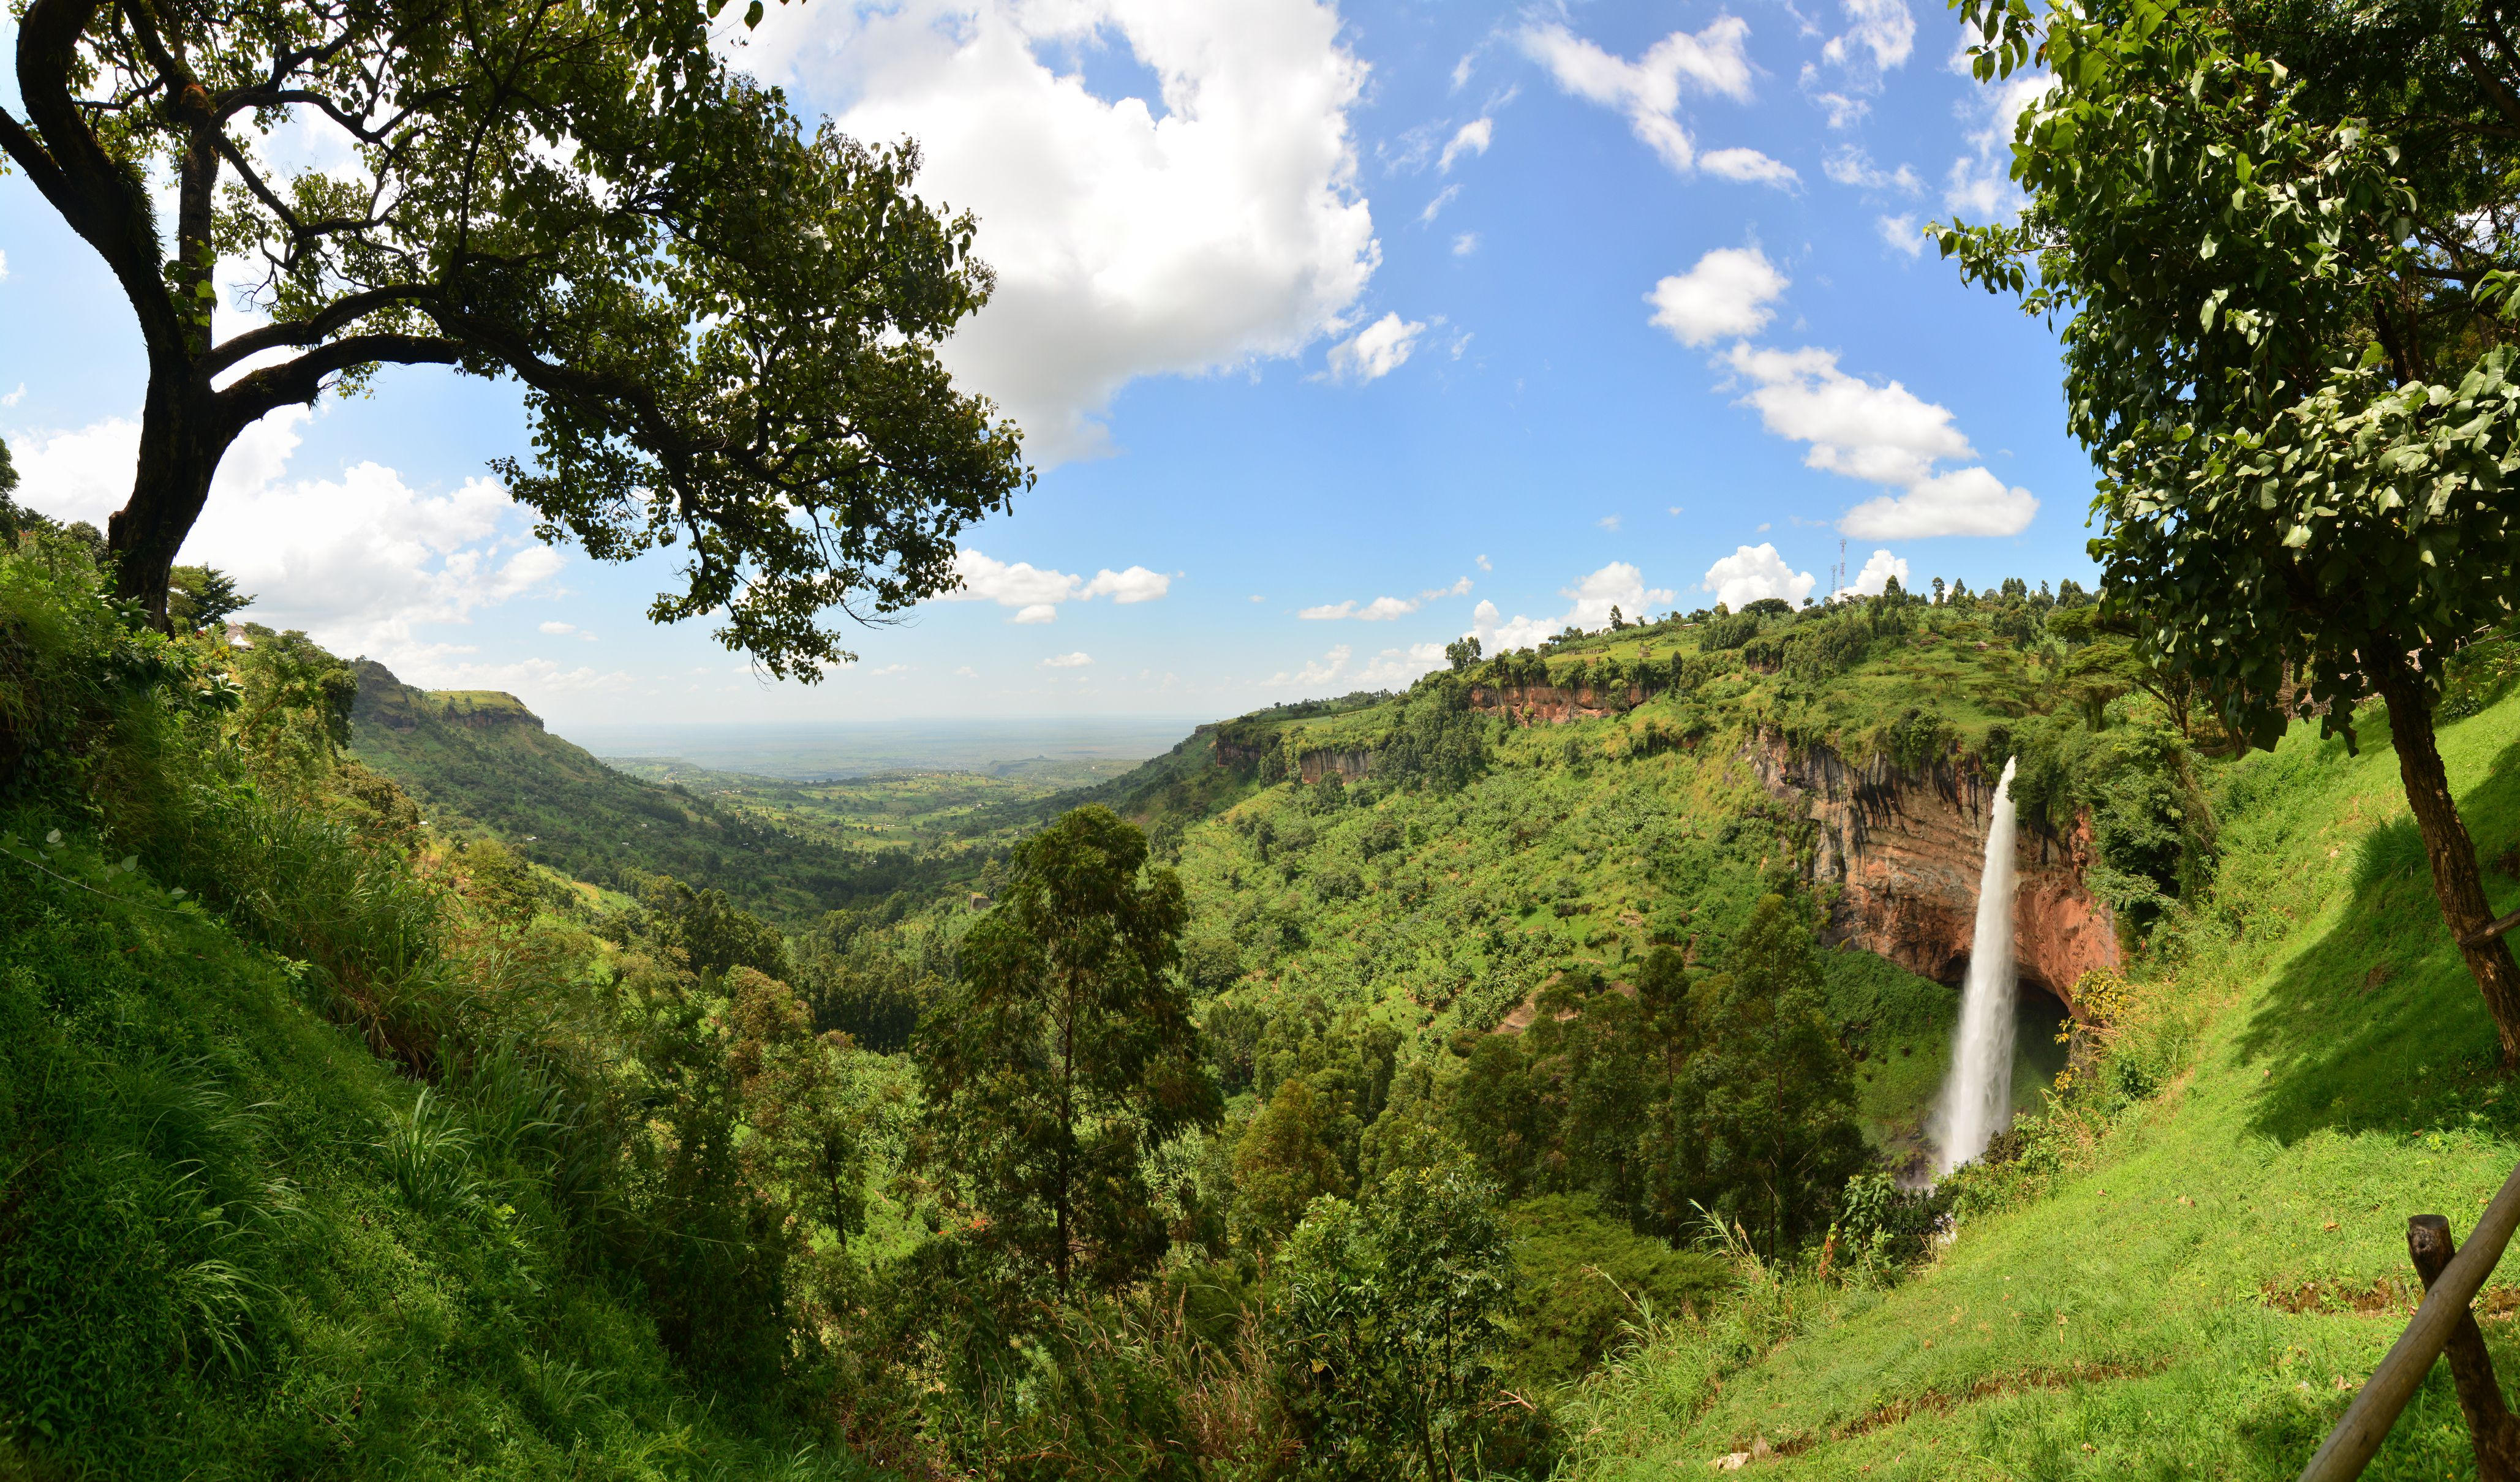 The lower Sipi waterfall, surrounded by lush rainforest vegetation